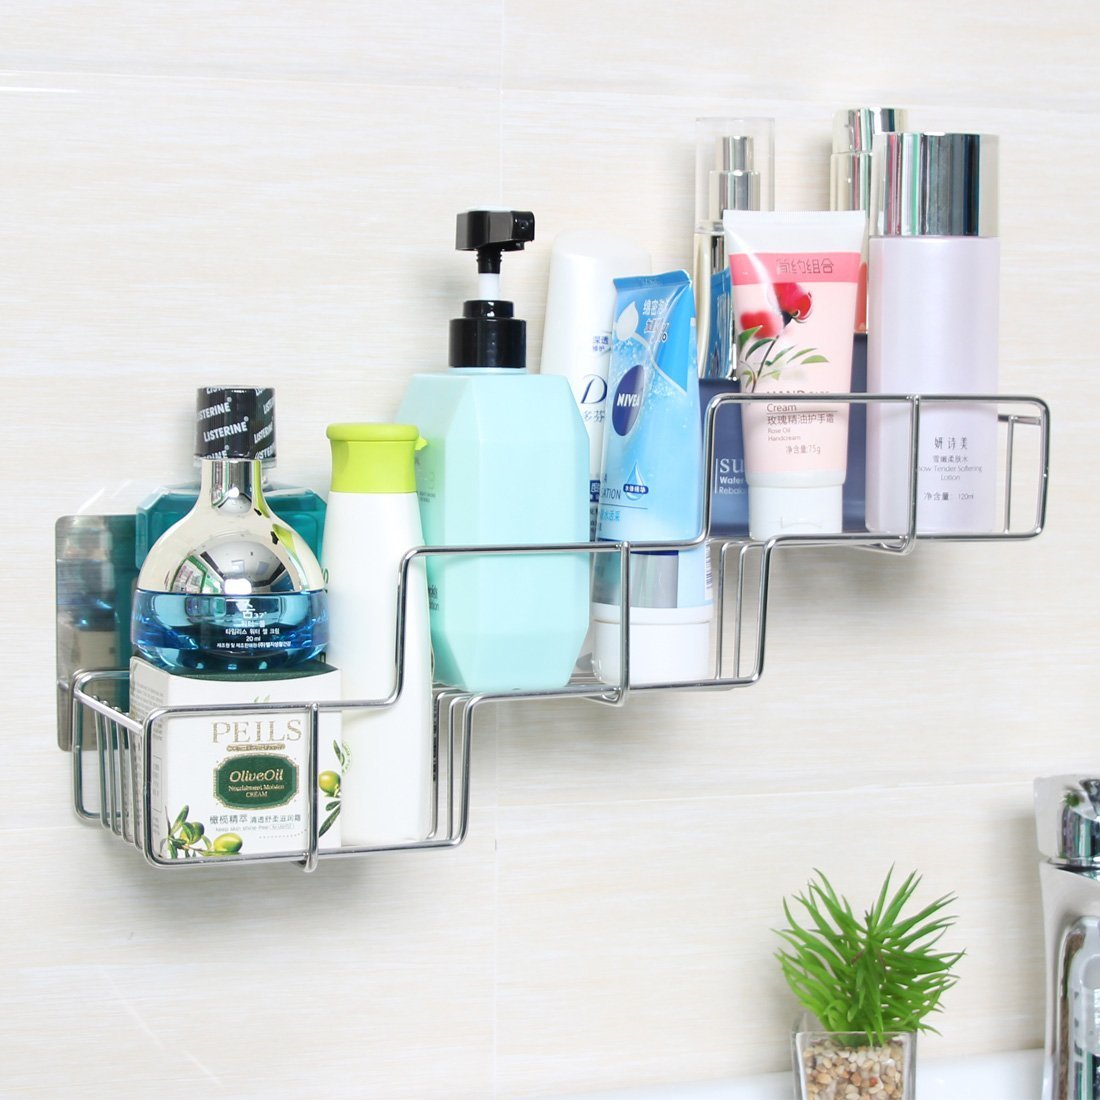 Komost Bathrooom Shower Organizer, Self Adhesive Bathroom Corner ...